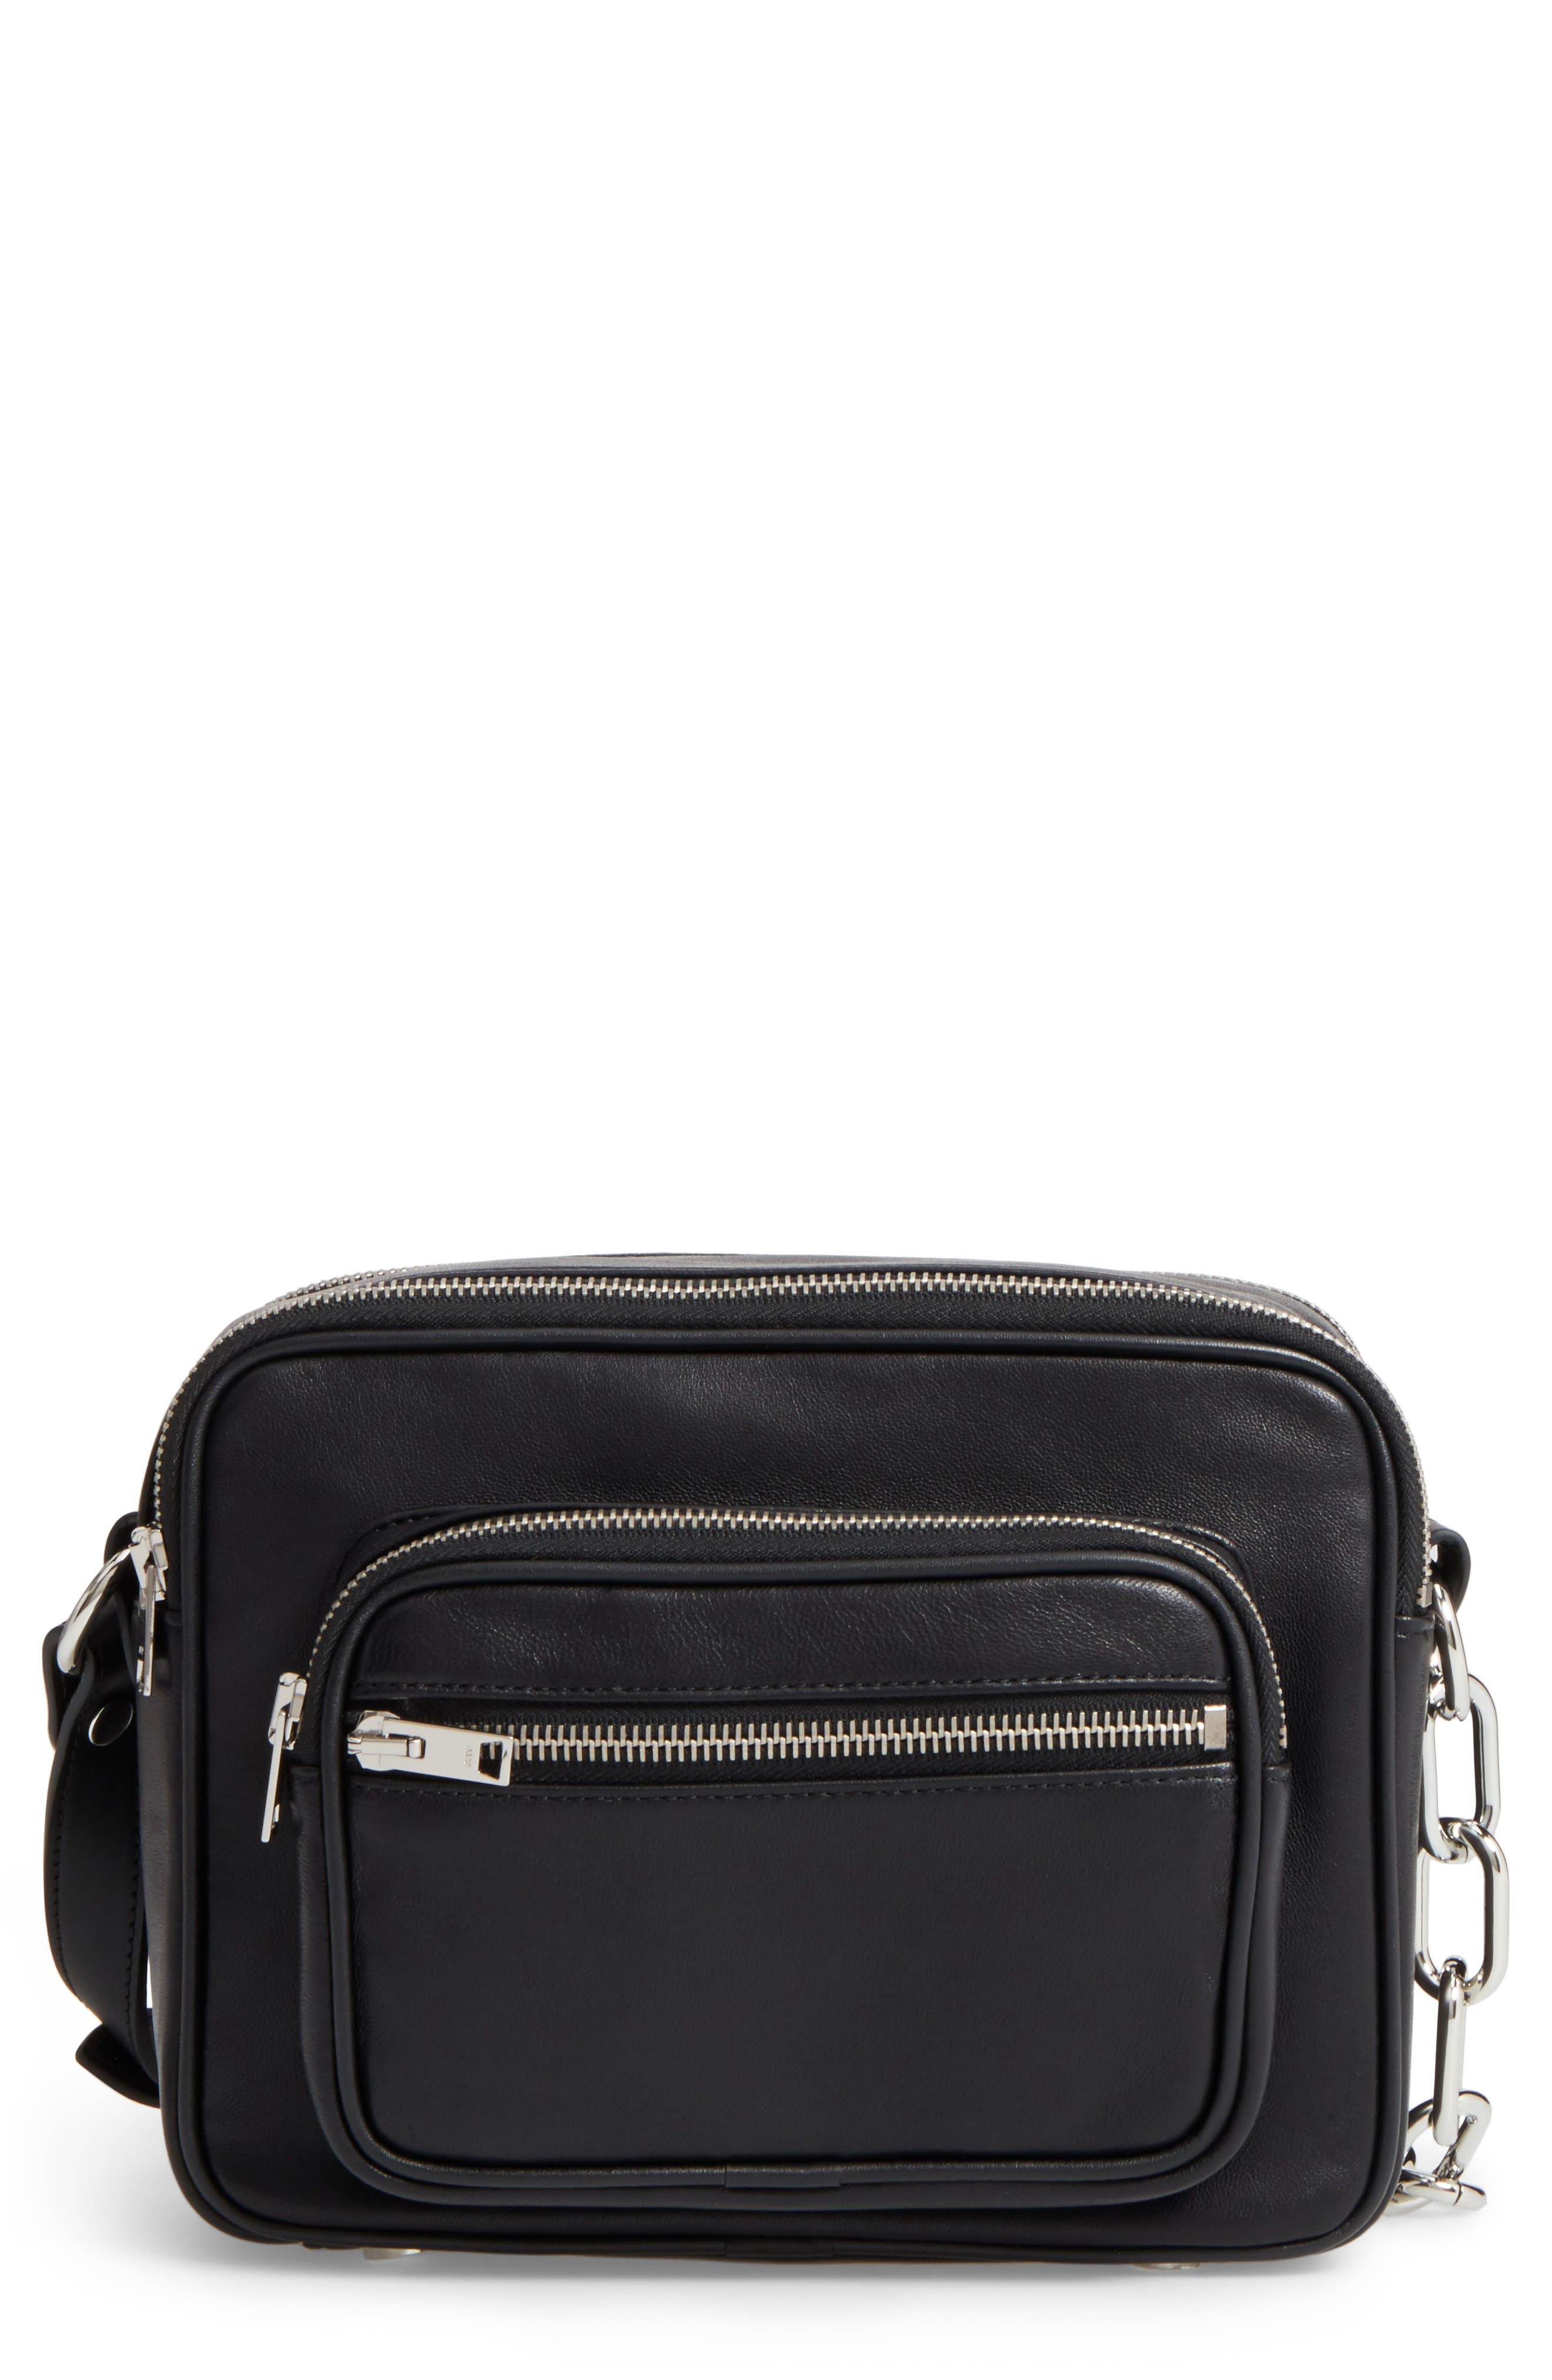 Washed Leather Crossbody Bag,                         Main,                         color, BLACK